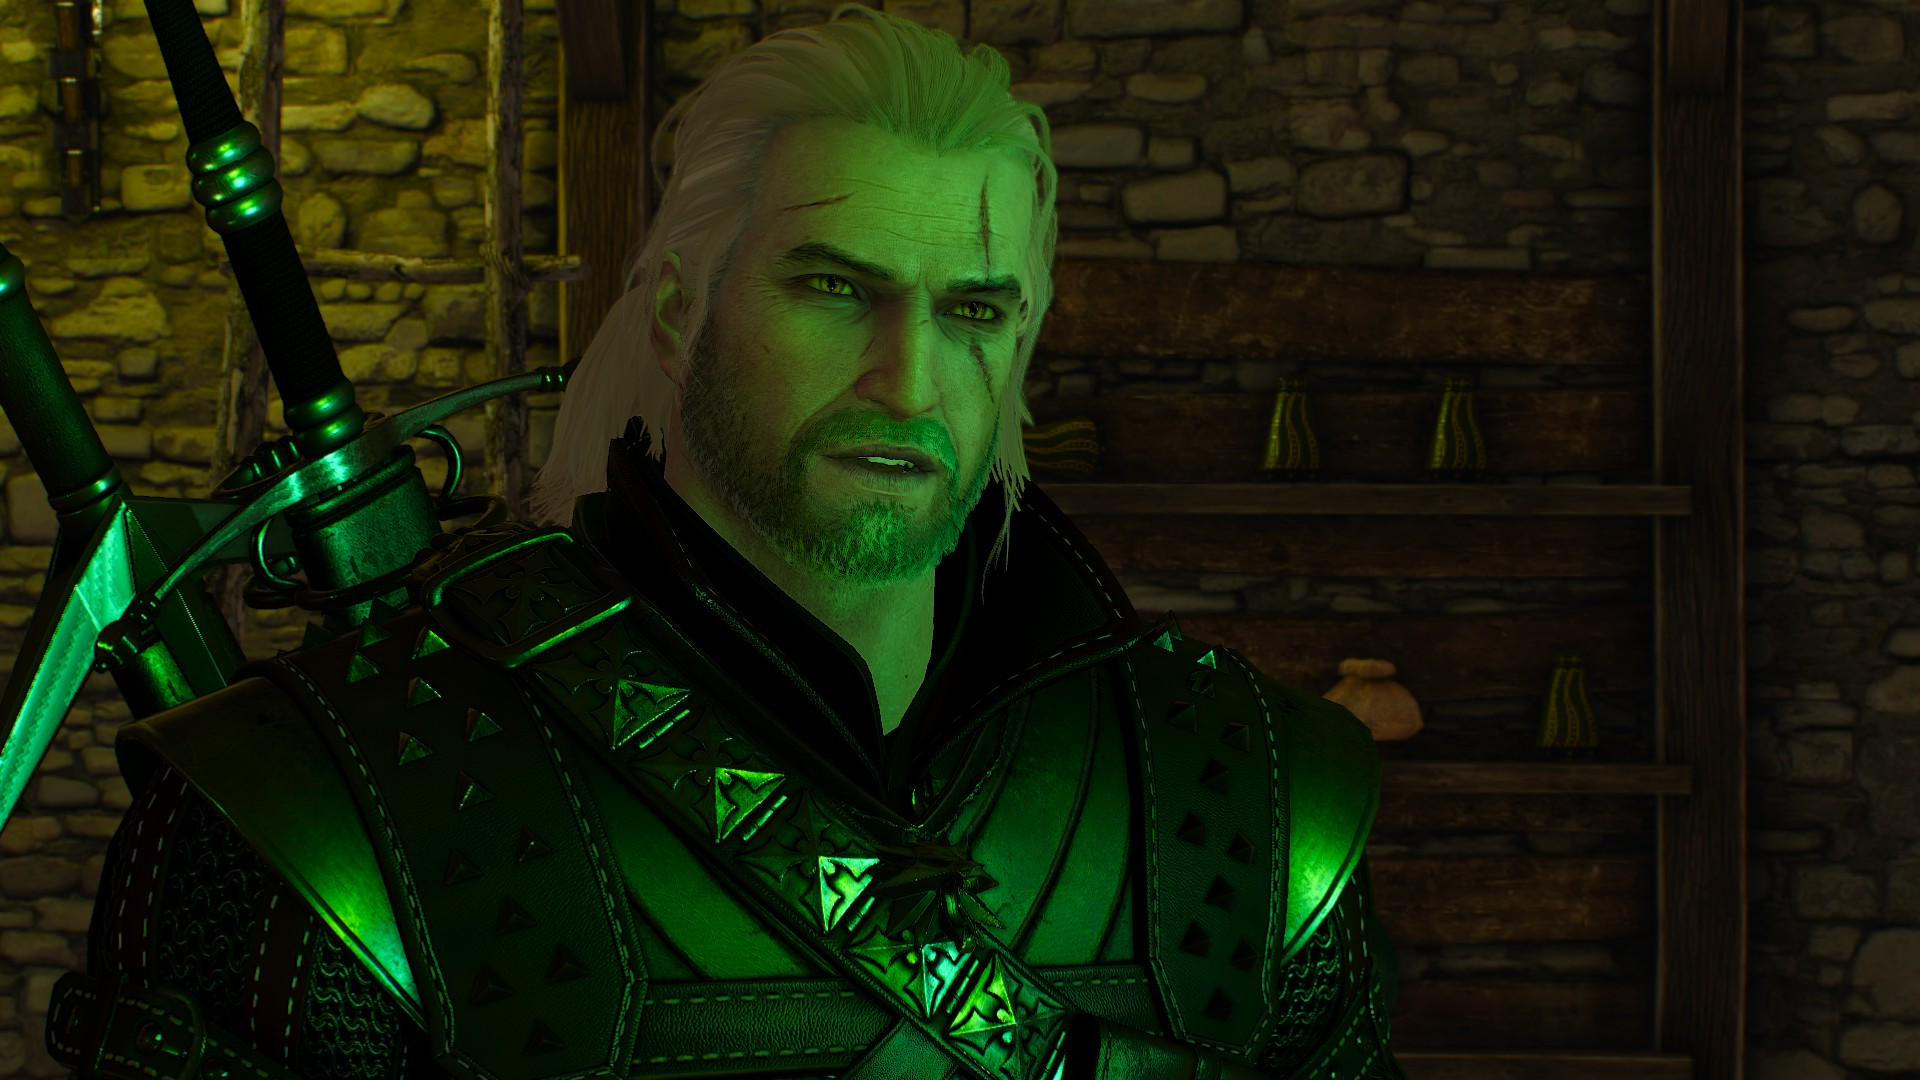 20180926201322_1.jpg - Witcher 3: Wild Hunt, the